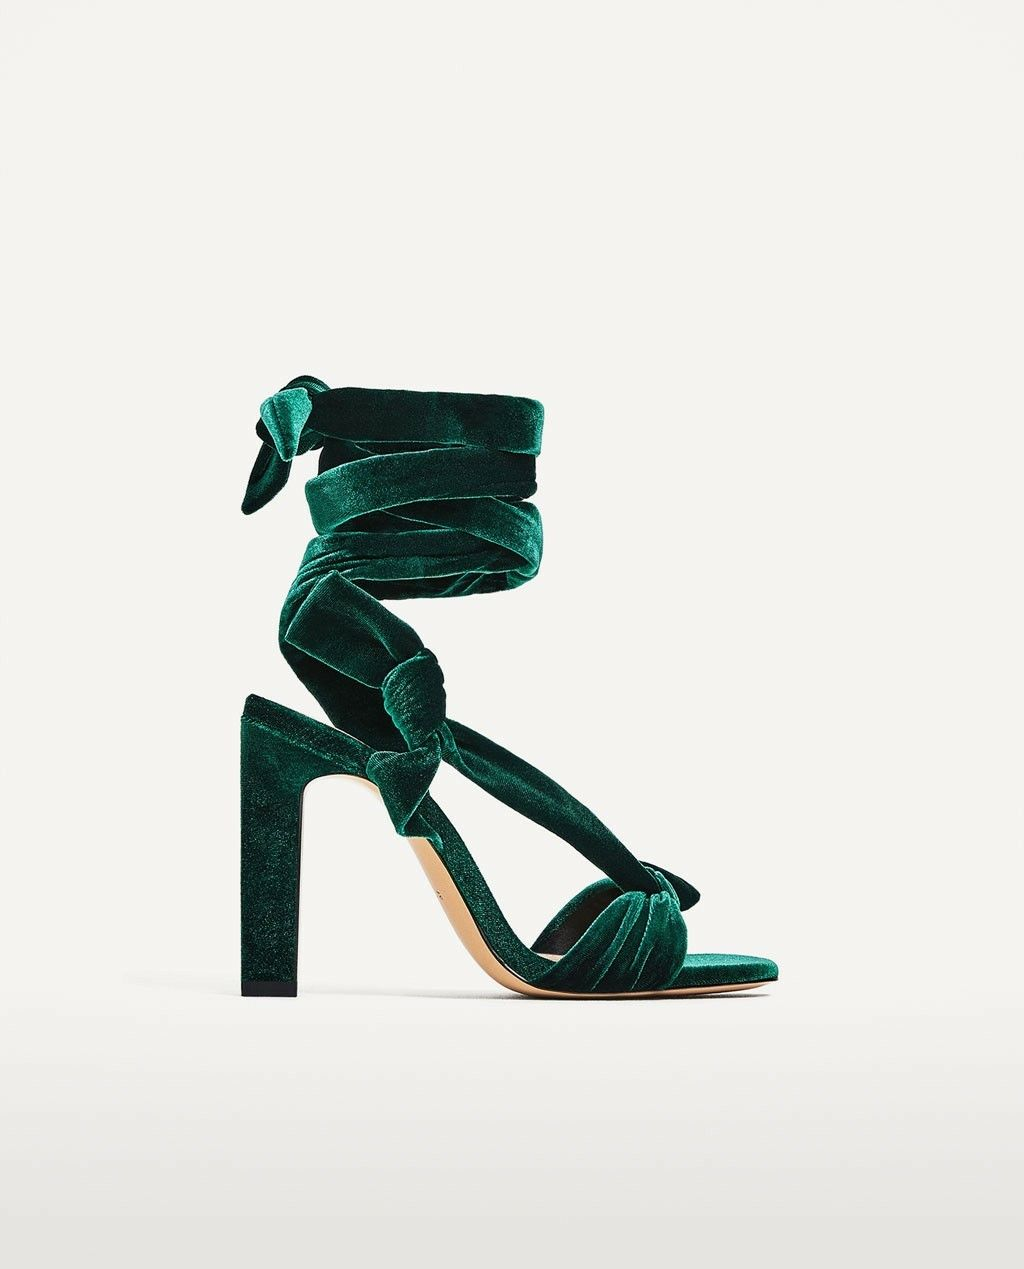 e1aeea11be214 Zara - Velvet Lace-Up High Heel Sandals in Emerald Green ...